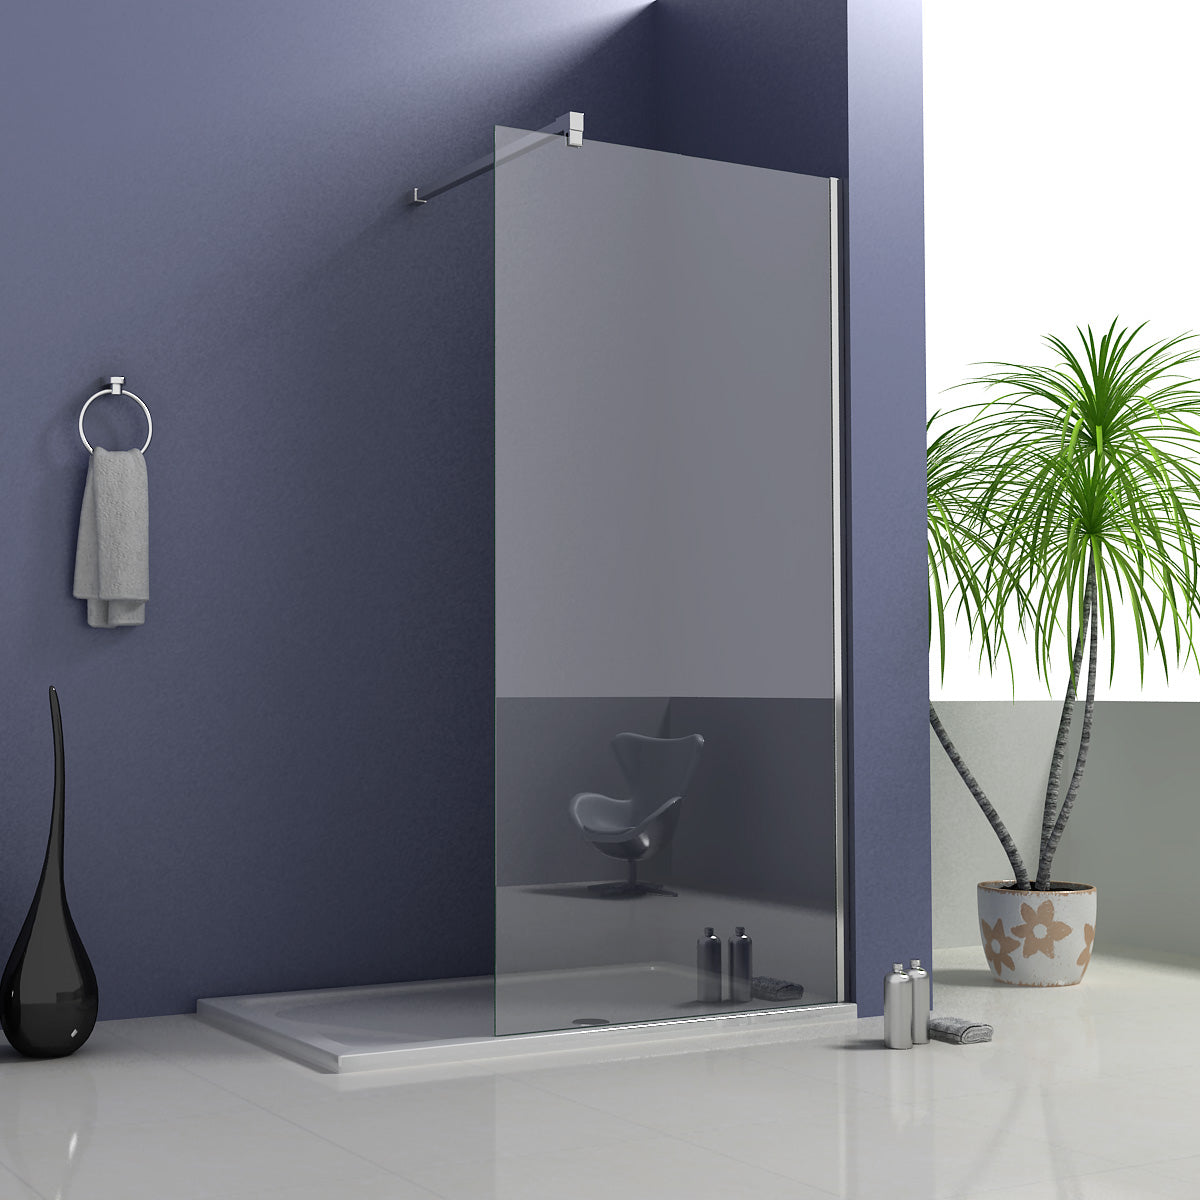 700-1400x1950mm Walk in Wet Room Shower screen,8mm NANO glass